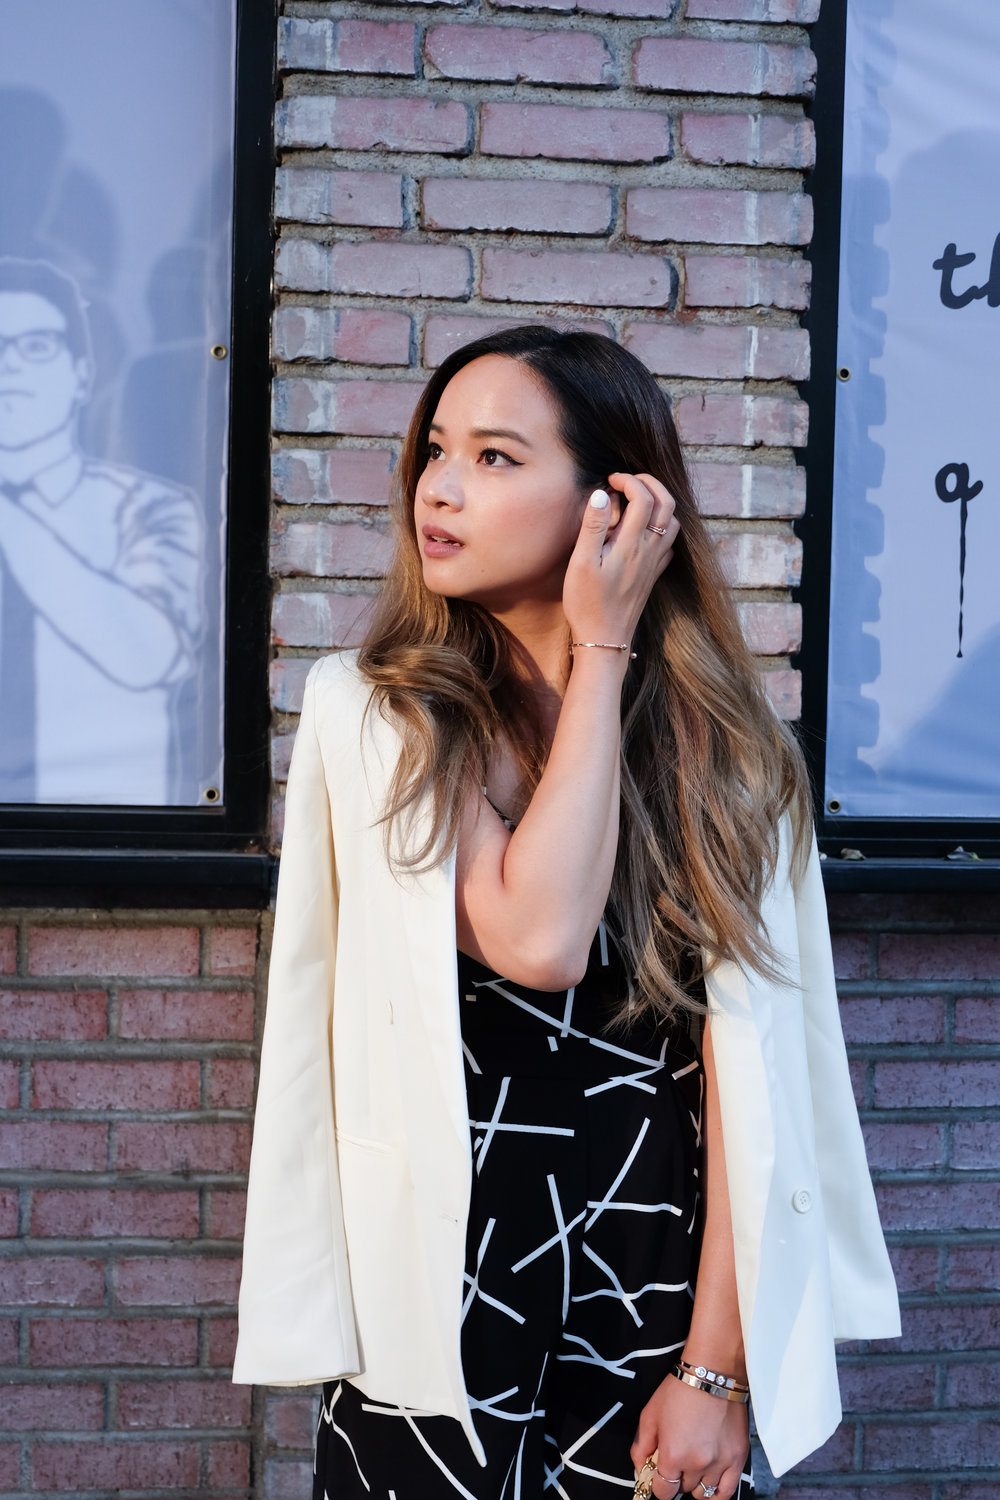 What I Wore To A Speaking Engagement || DailyLook Elite (promo code inside)